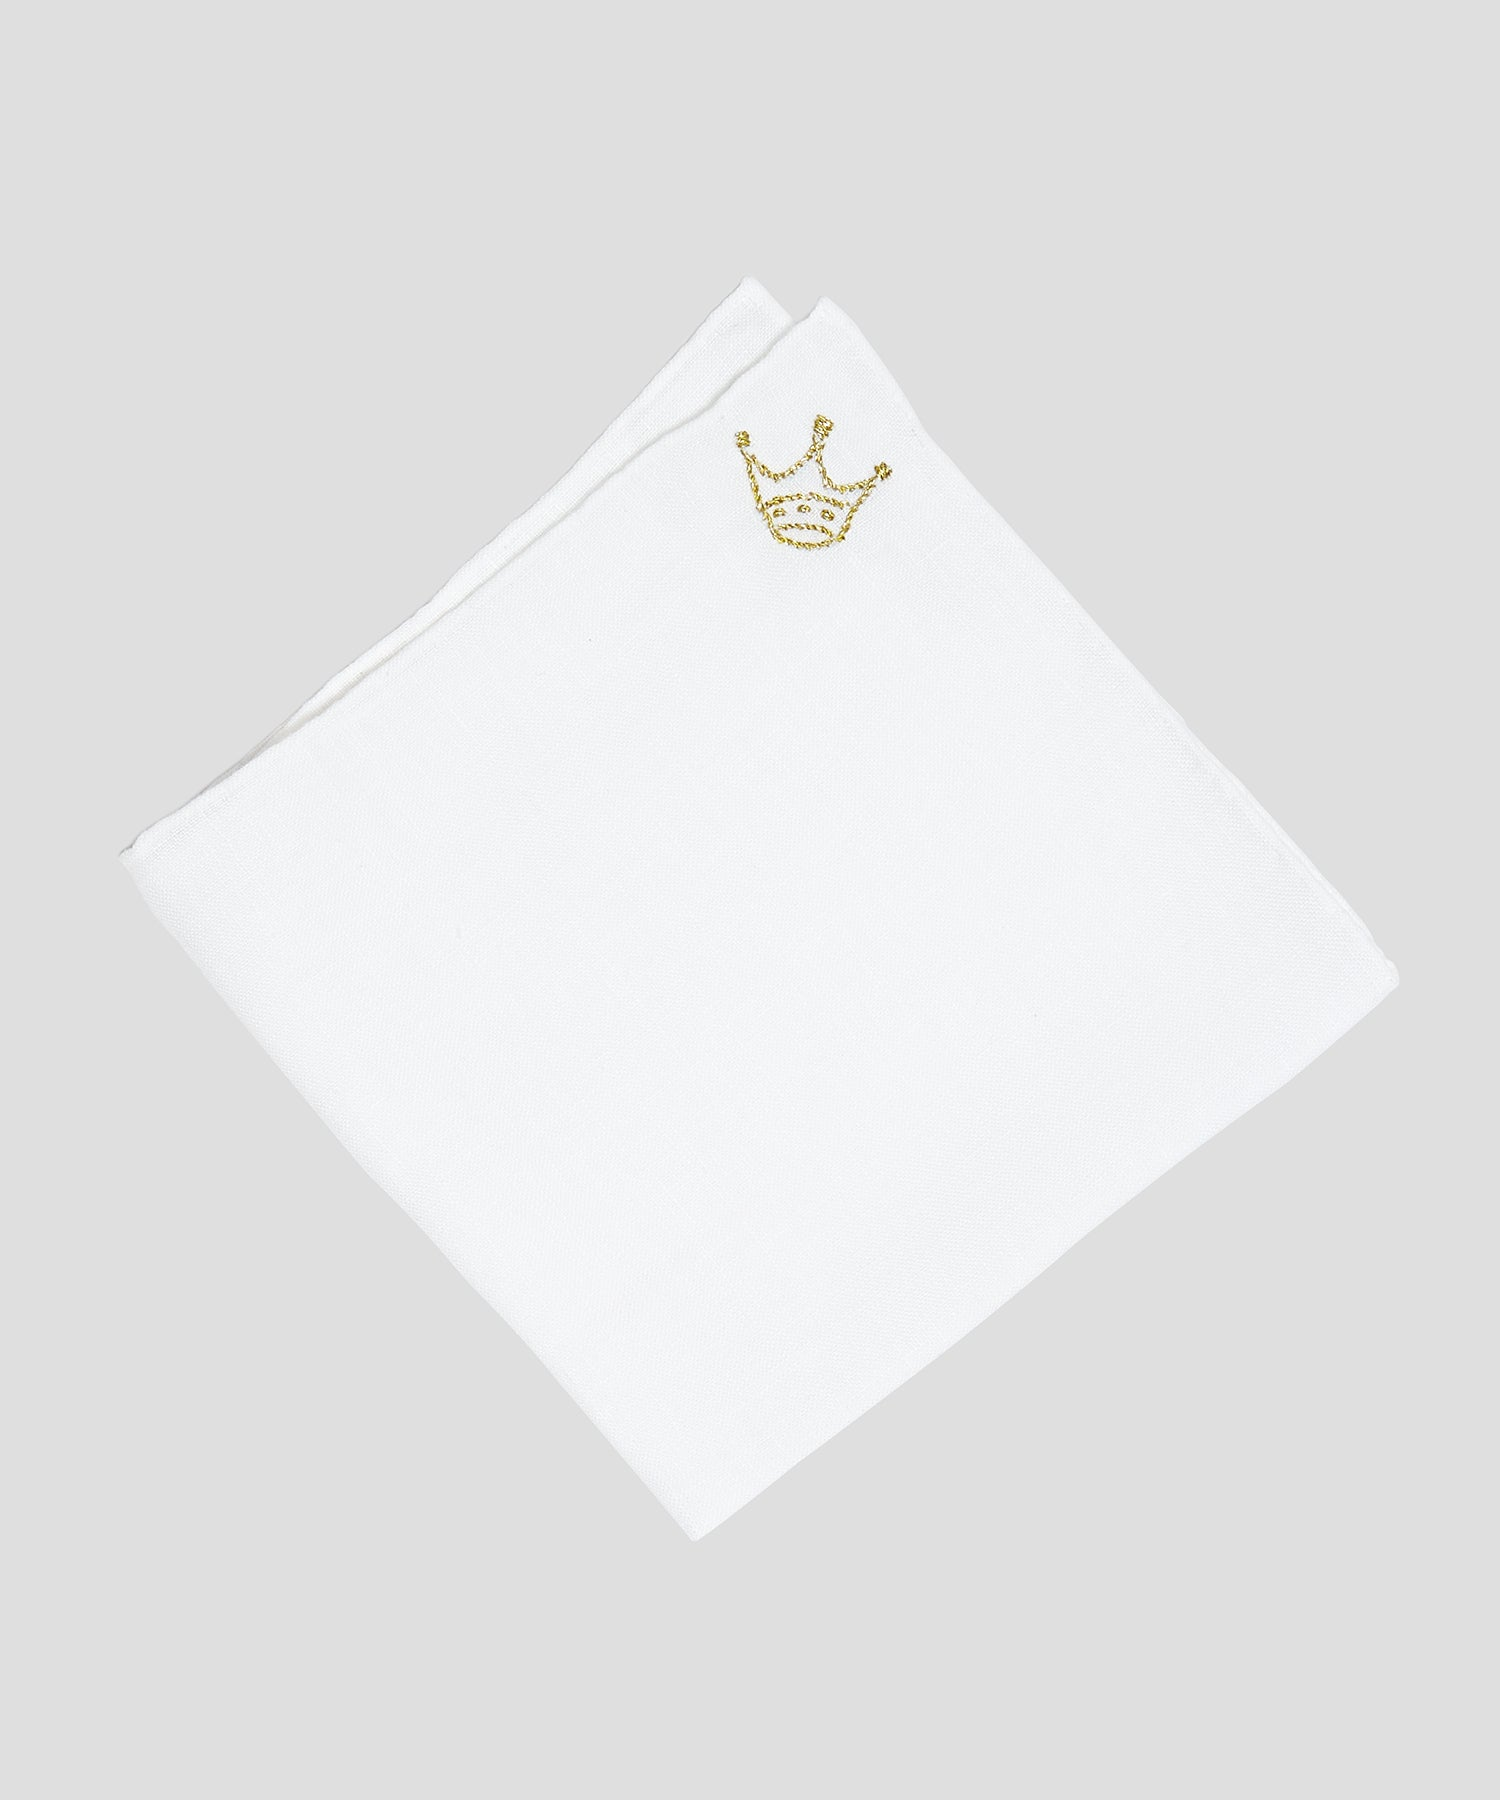 Handmade Italian Linen Pocket Square with Crown